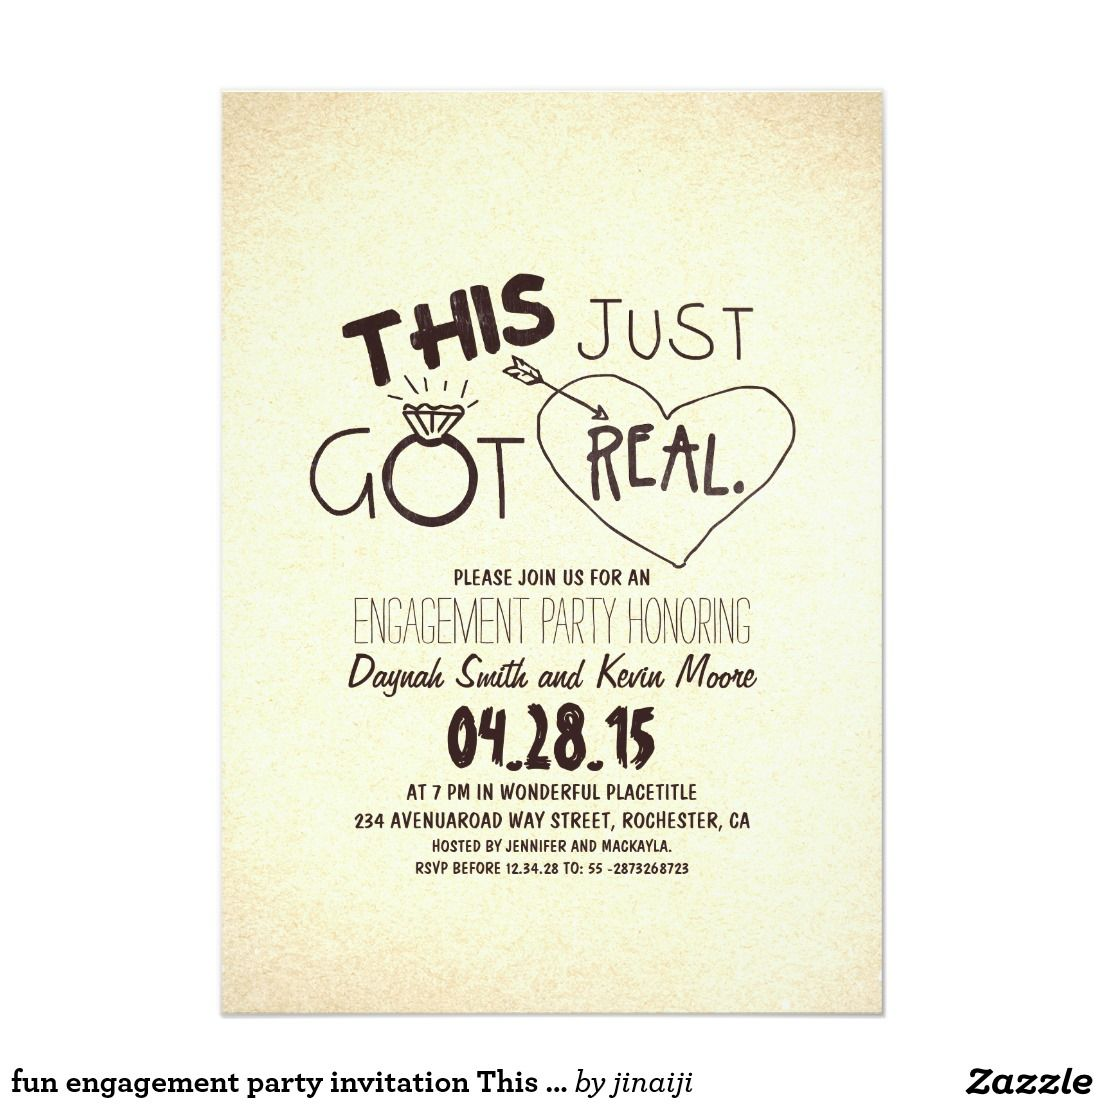 fun engagement party invitation This Just Got Real | Wedding ...